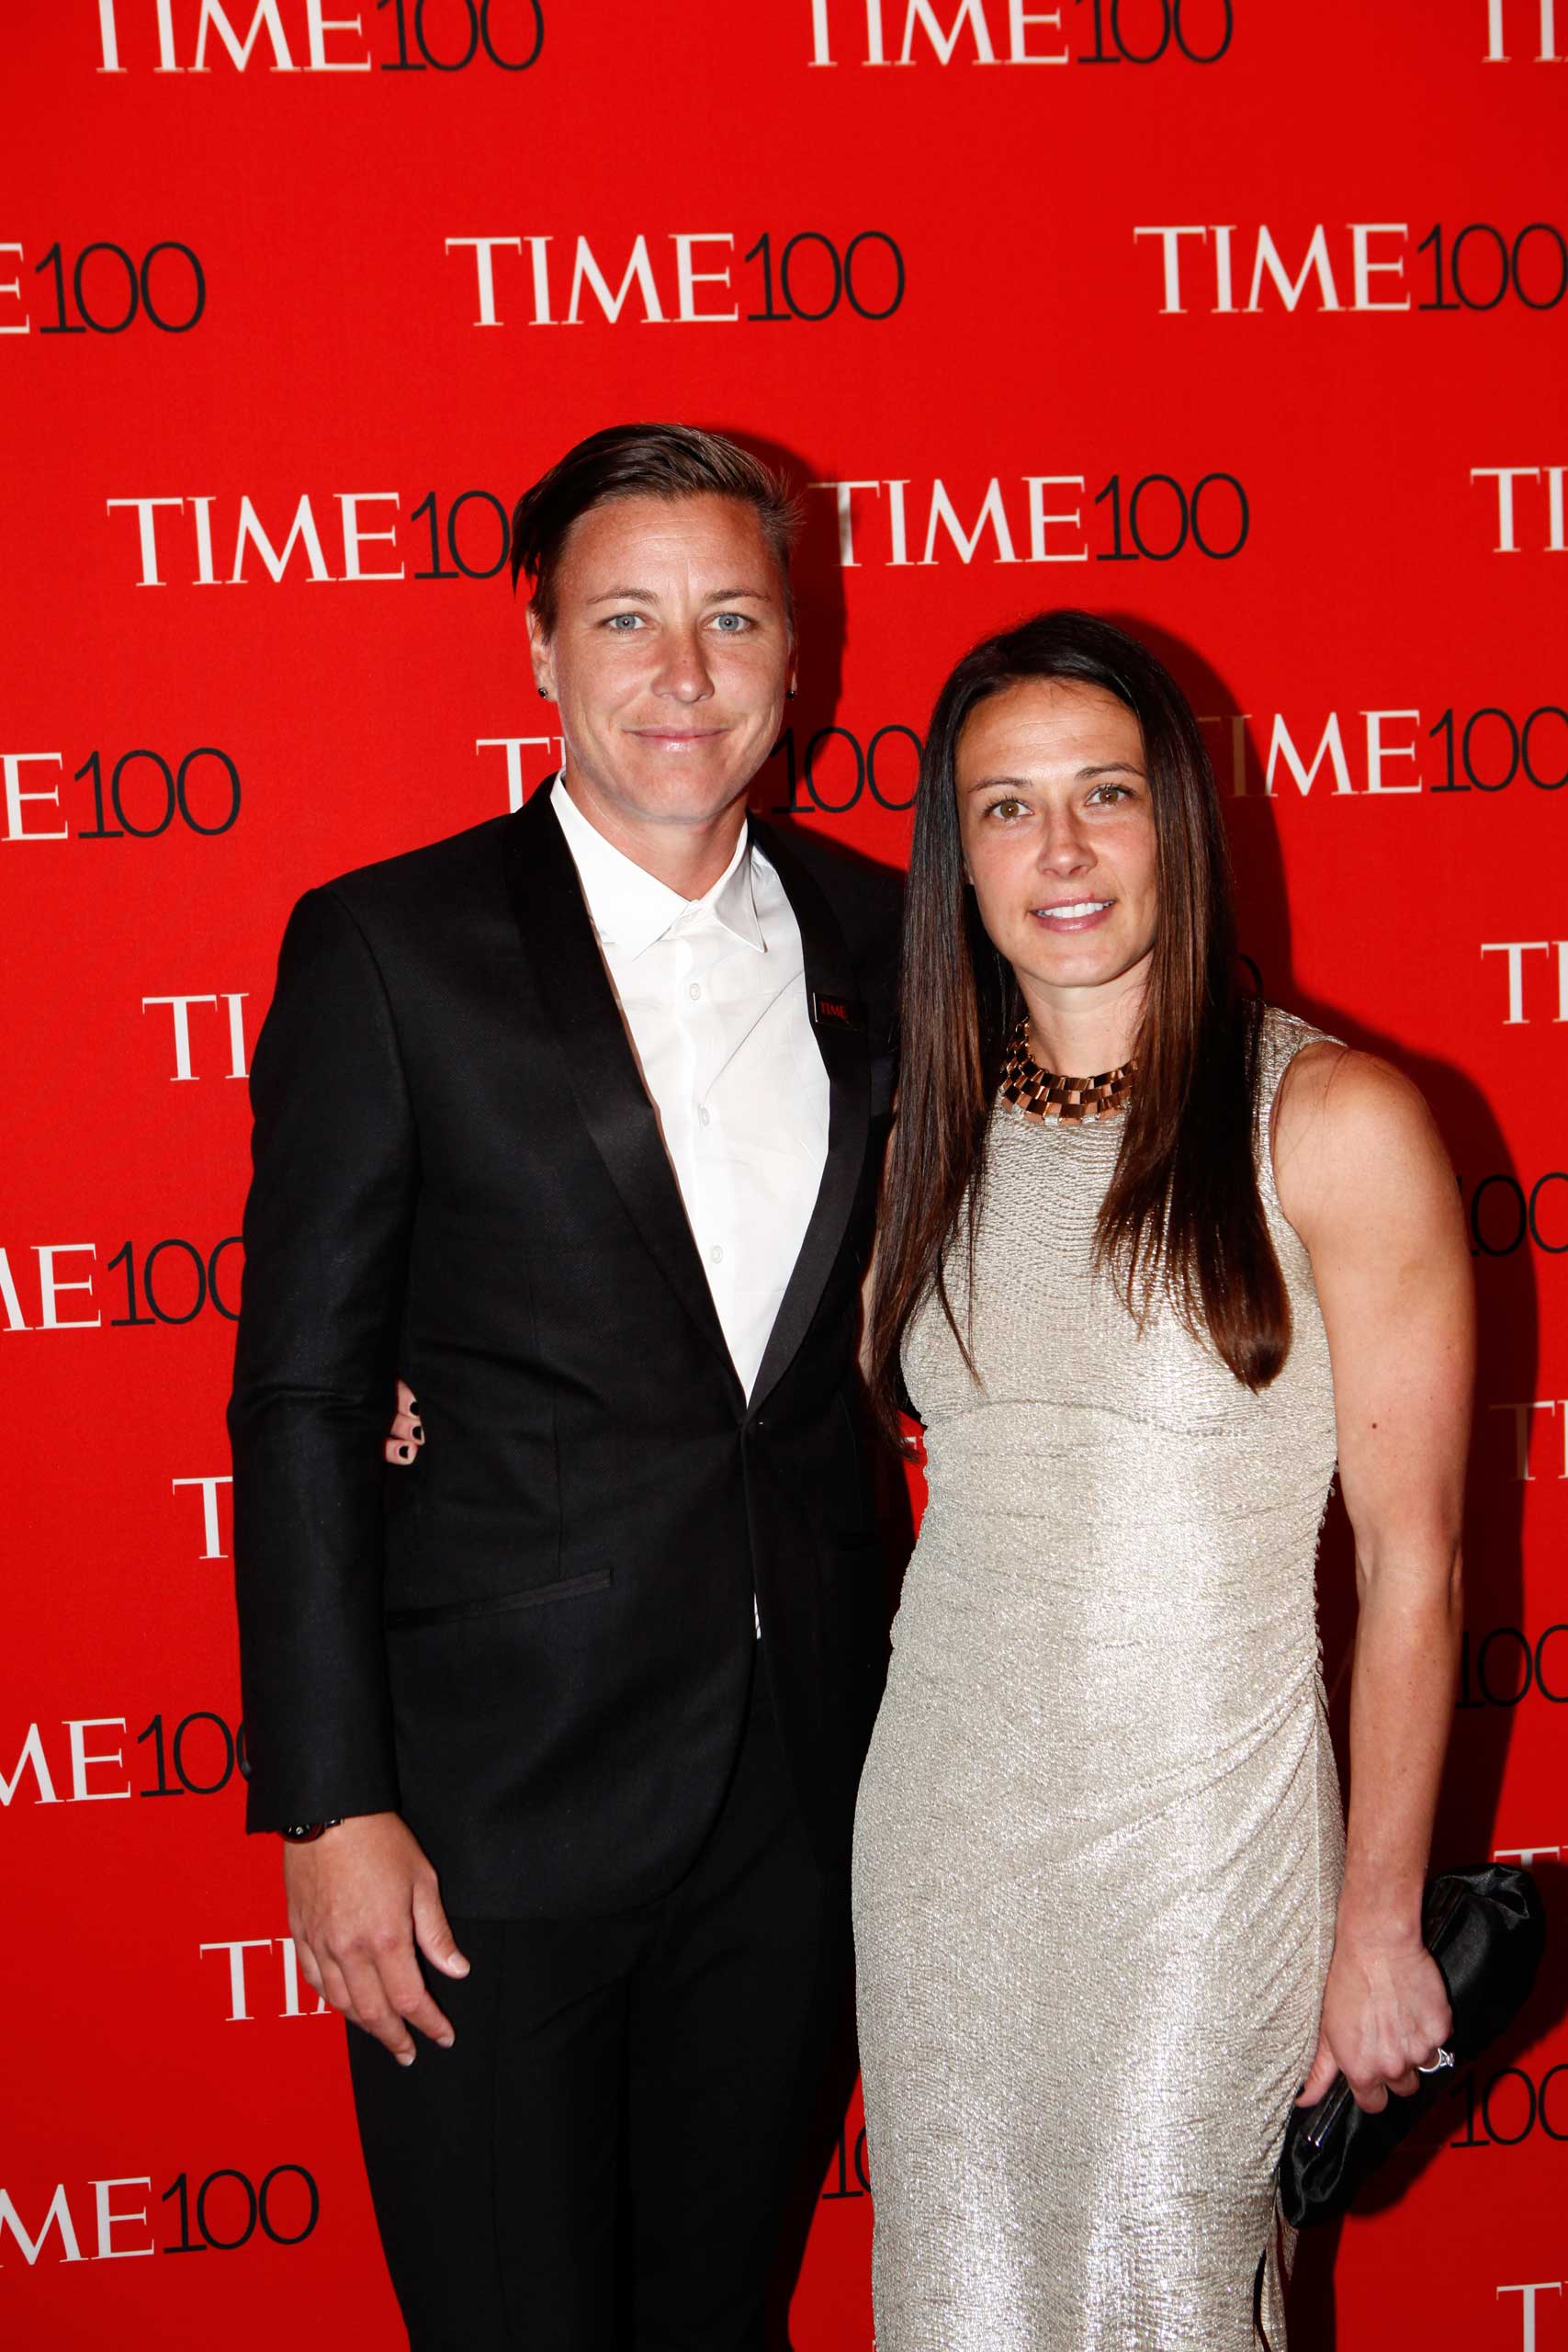 Abby Wambach and Sarah Huffman attend the TIME 100 Gala at Jazz at Lincoln Center in New York City on Apr. 21, 2015.